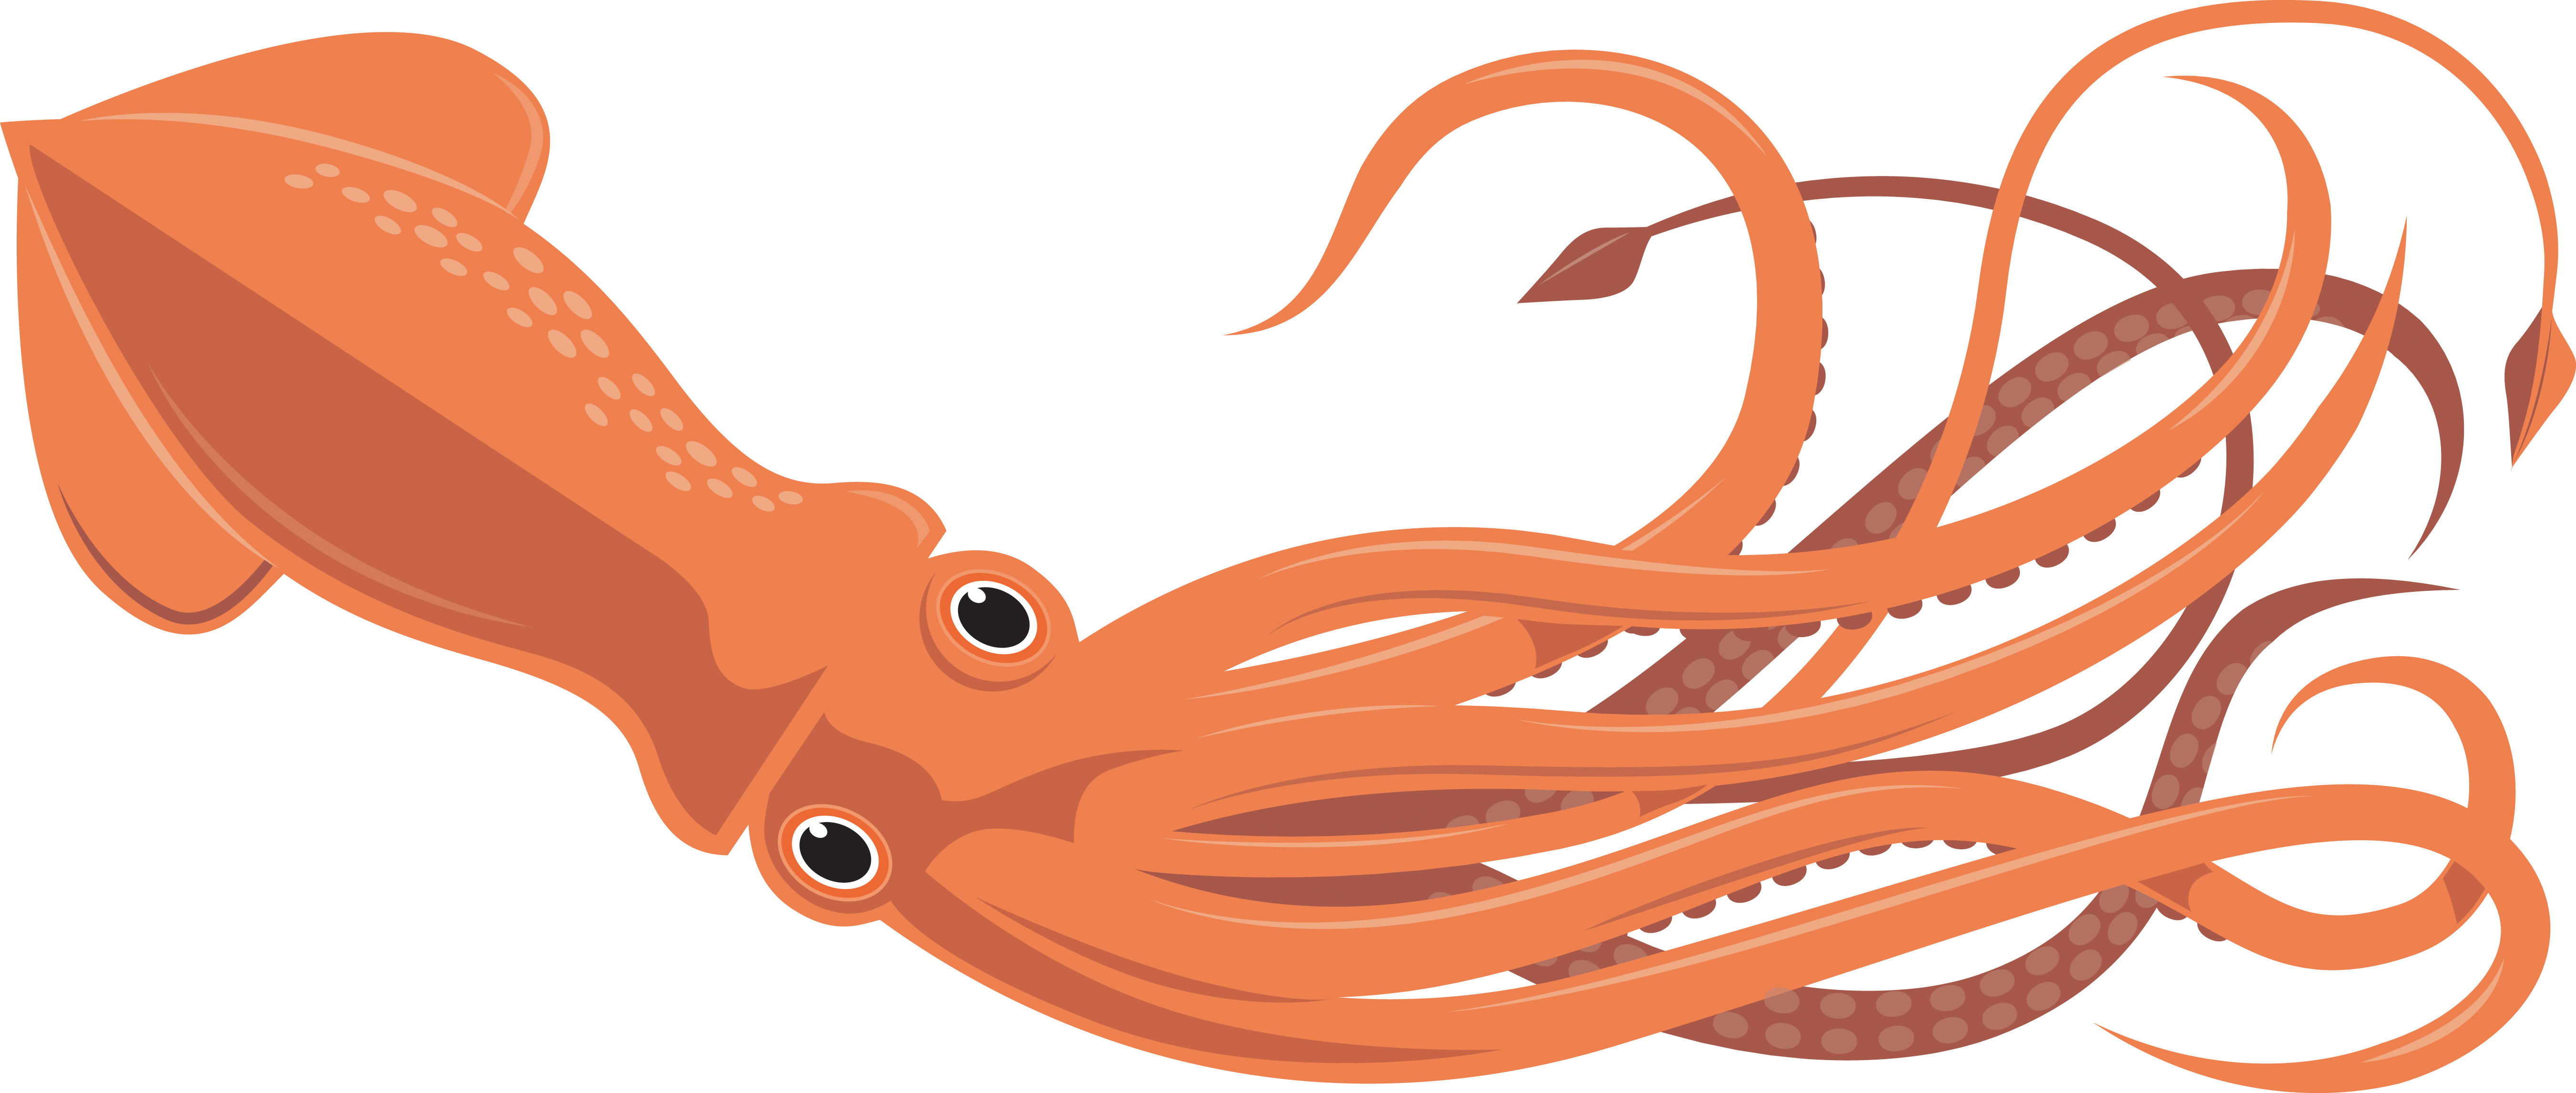 5401x2292 Realistic Clipart Octopus